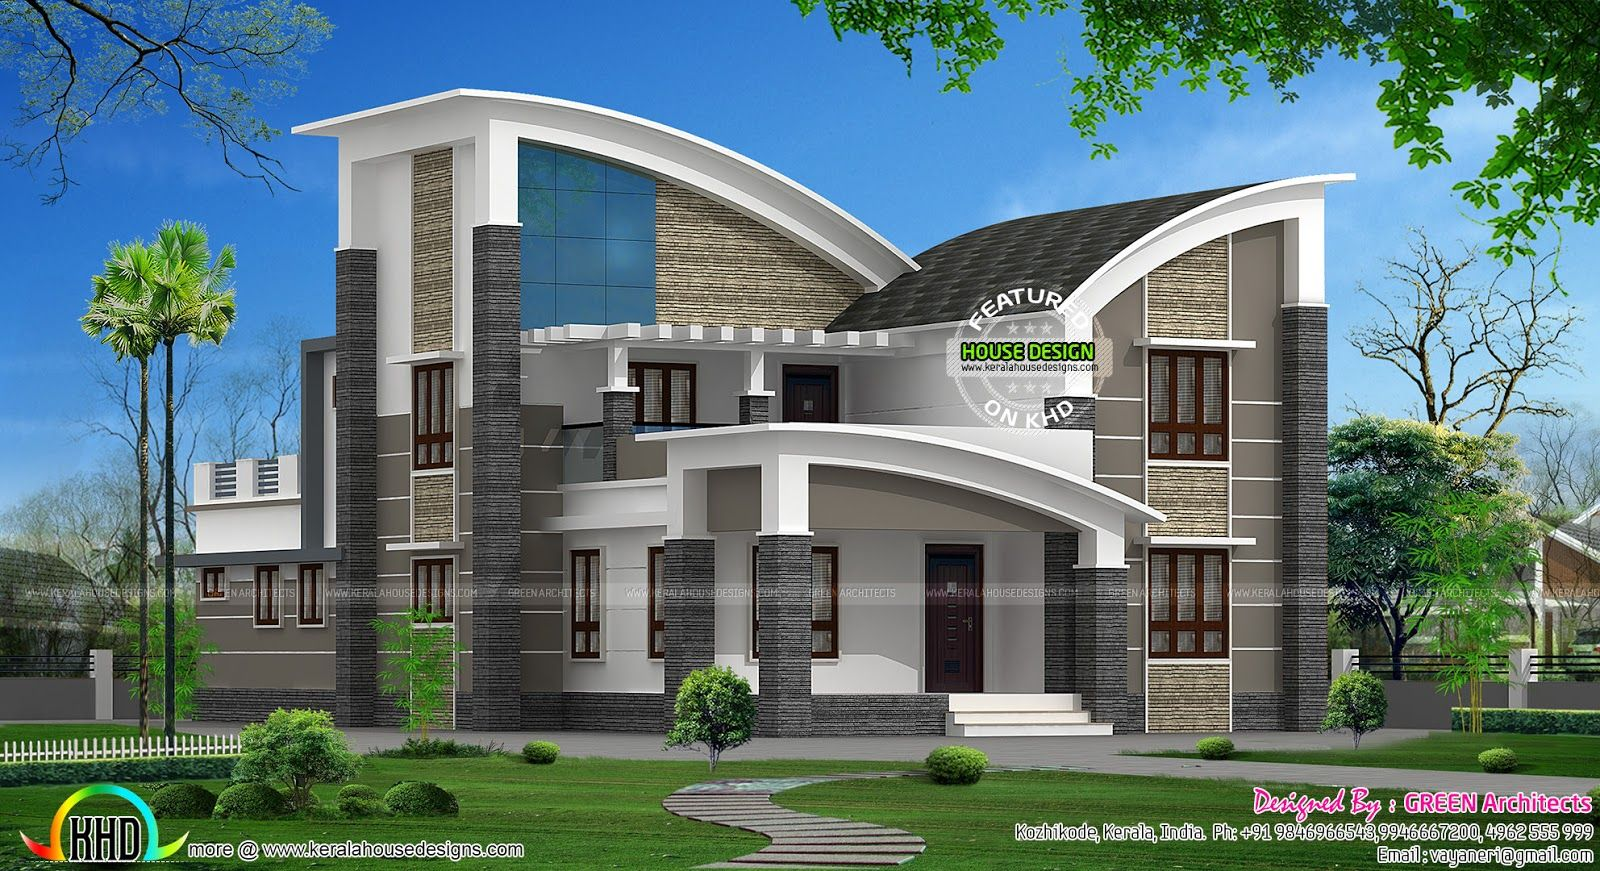 Modern style curved roof villa home inspiration for Home architecture styles